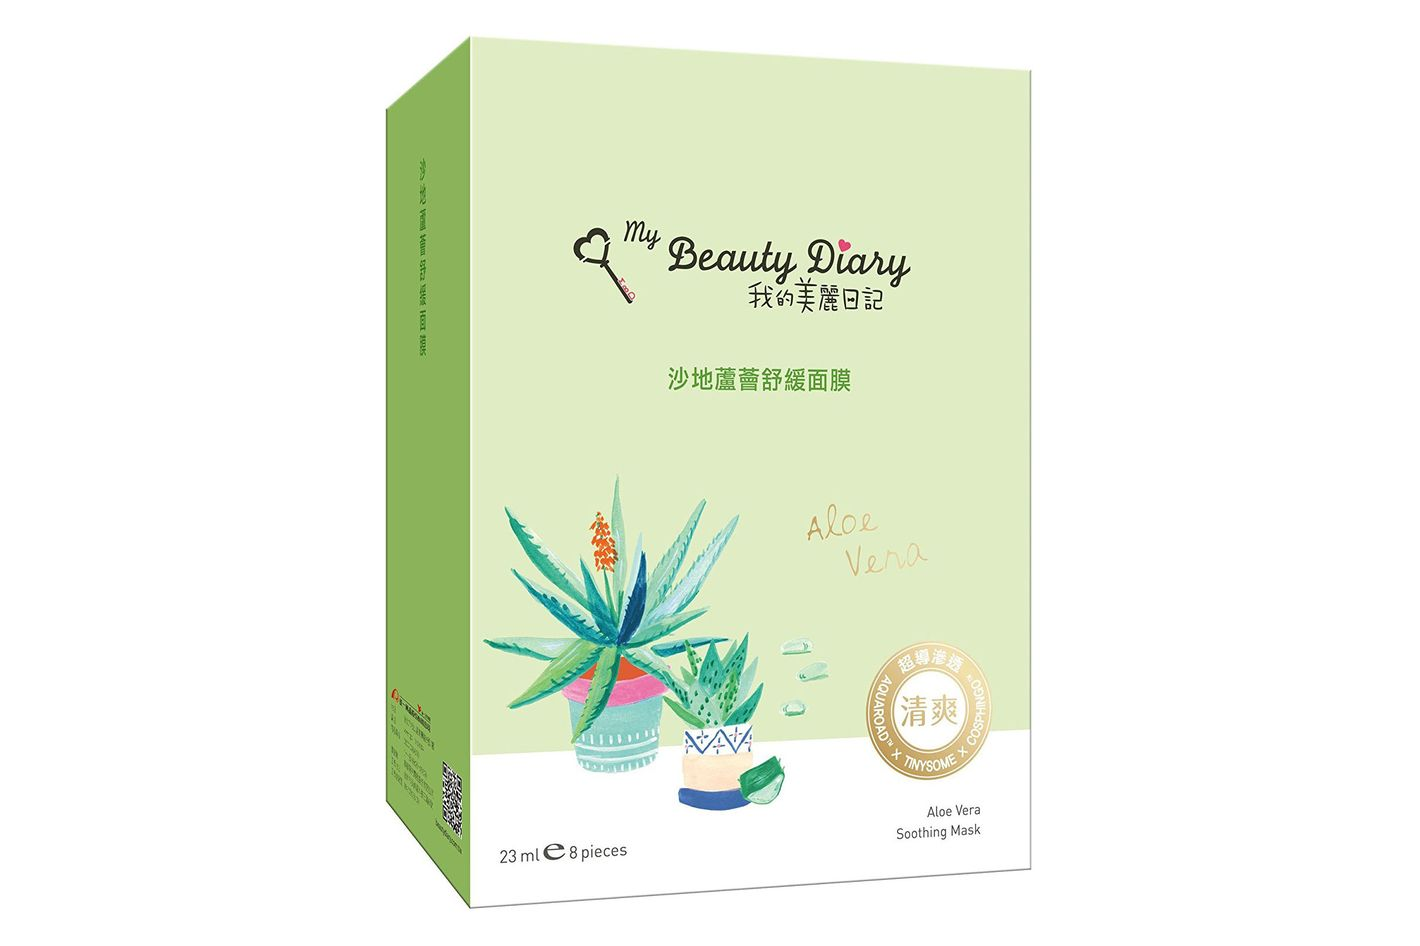 My Beauty Diary Aloe Vera Soothing Mask